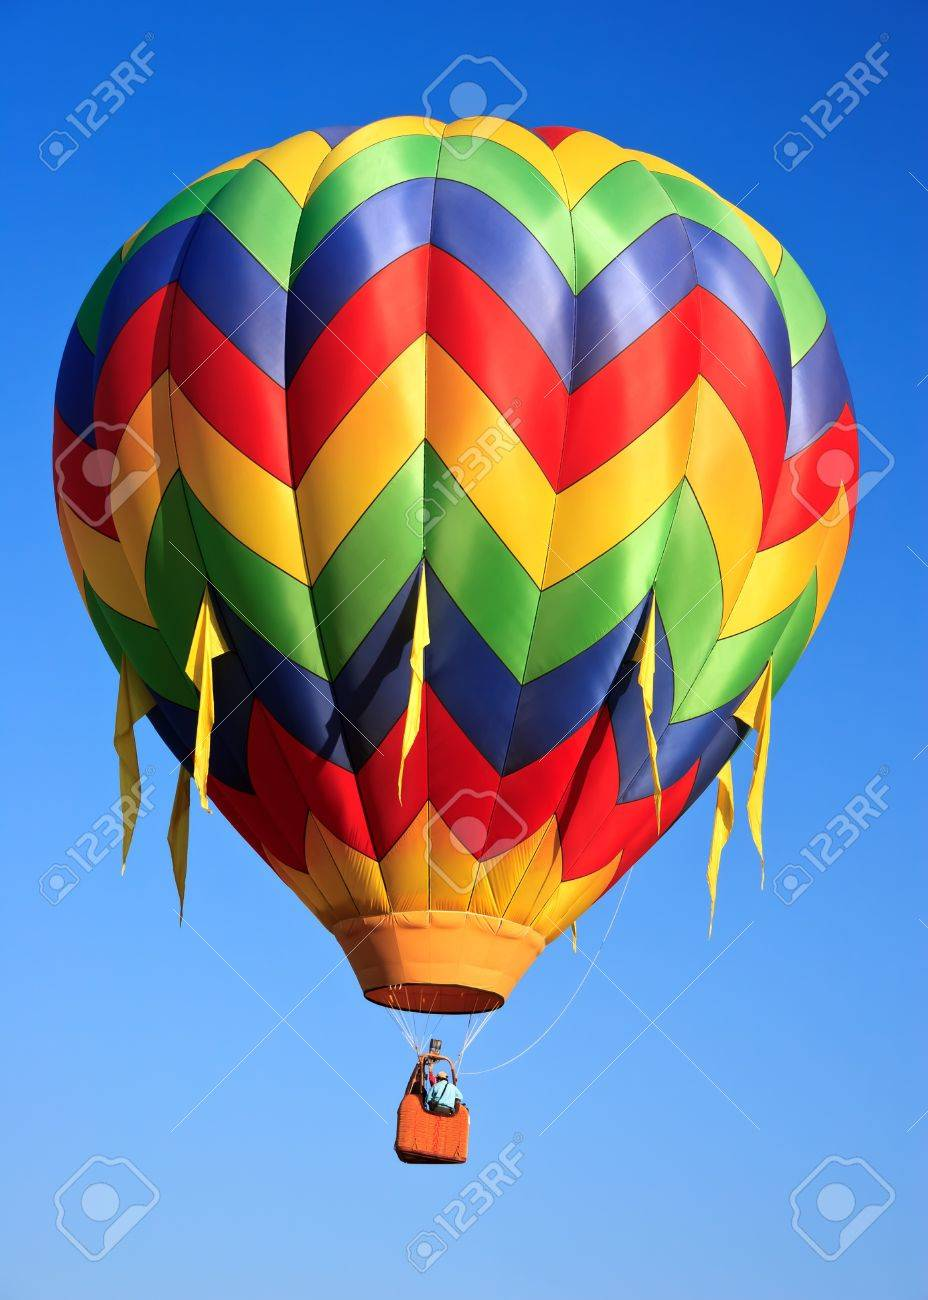 - Colorful Hot Air Balloon On Blue Sky Stock Photo, Picture And